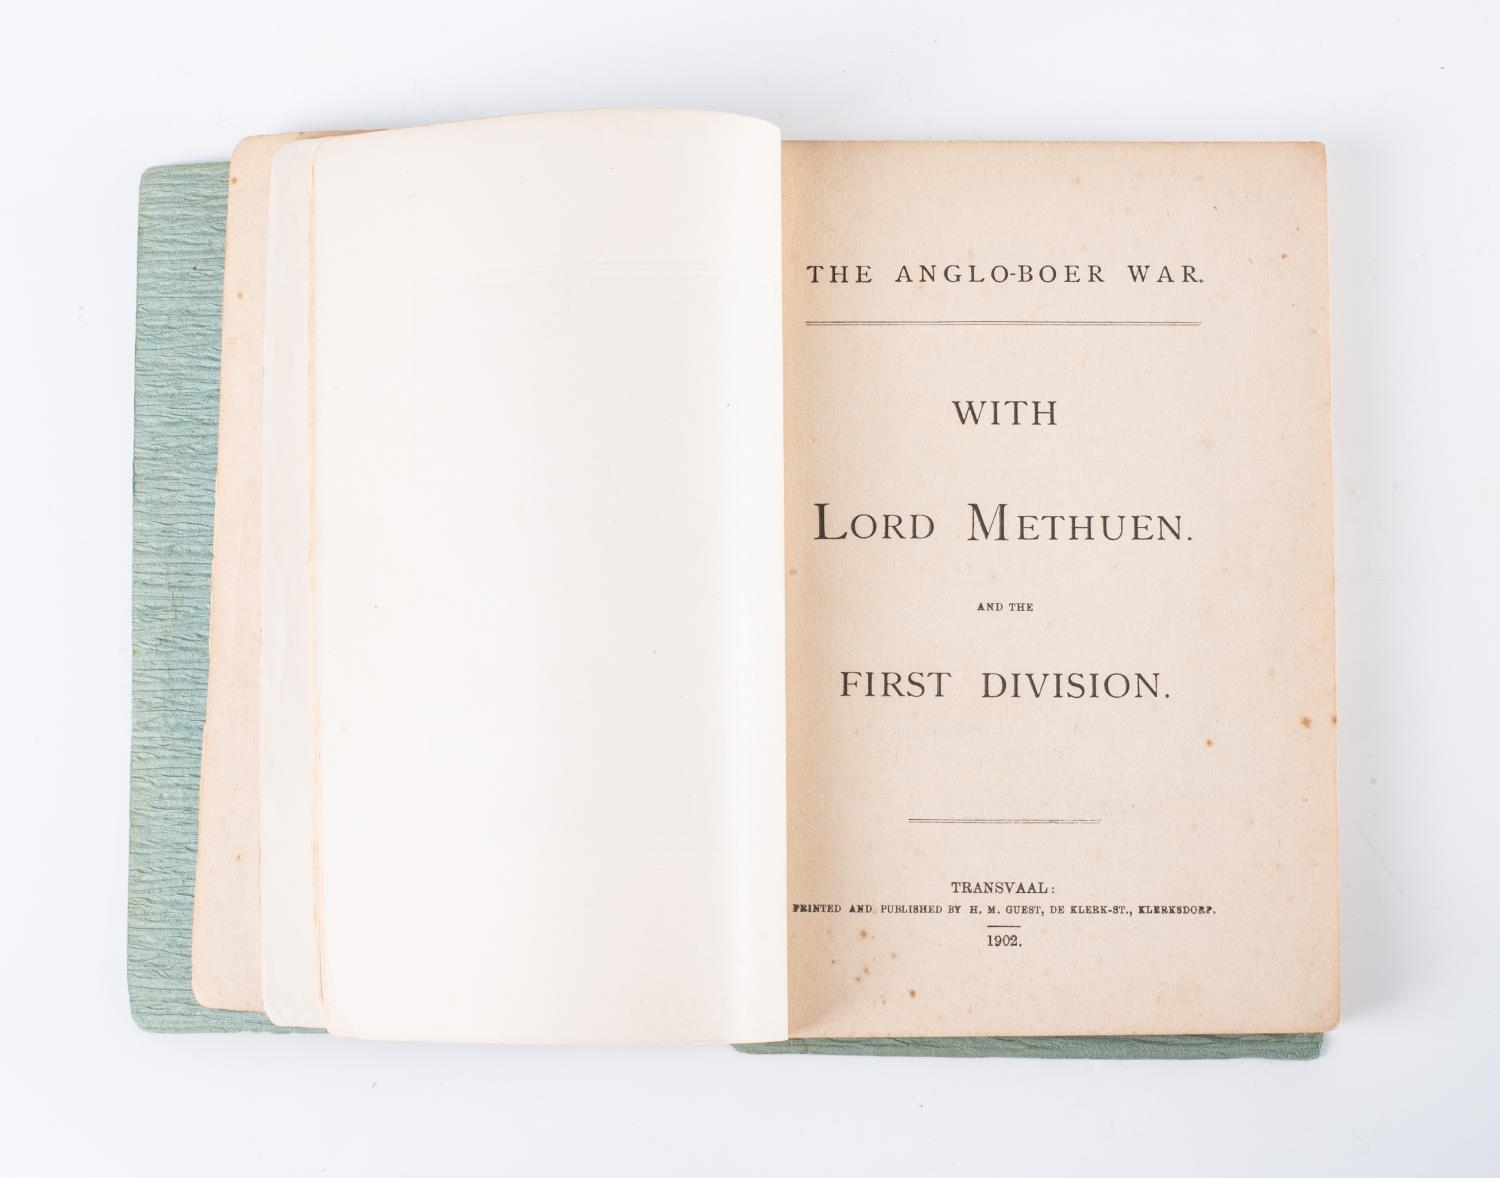 Guest, H. M. ? WITH LORD METHUEN AND THE FIRST DIVISION (THE ANGLO BOER WAR) - Image 4 of 4